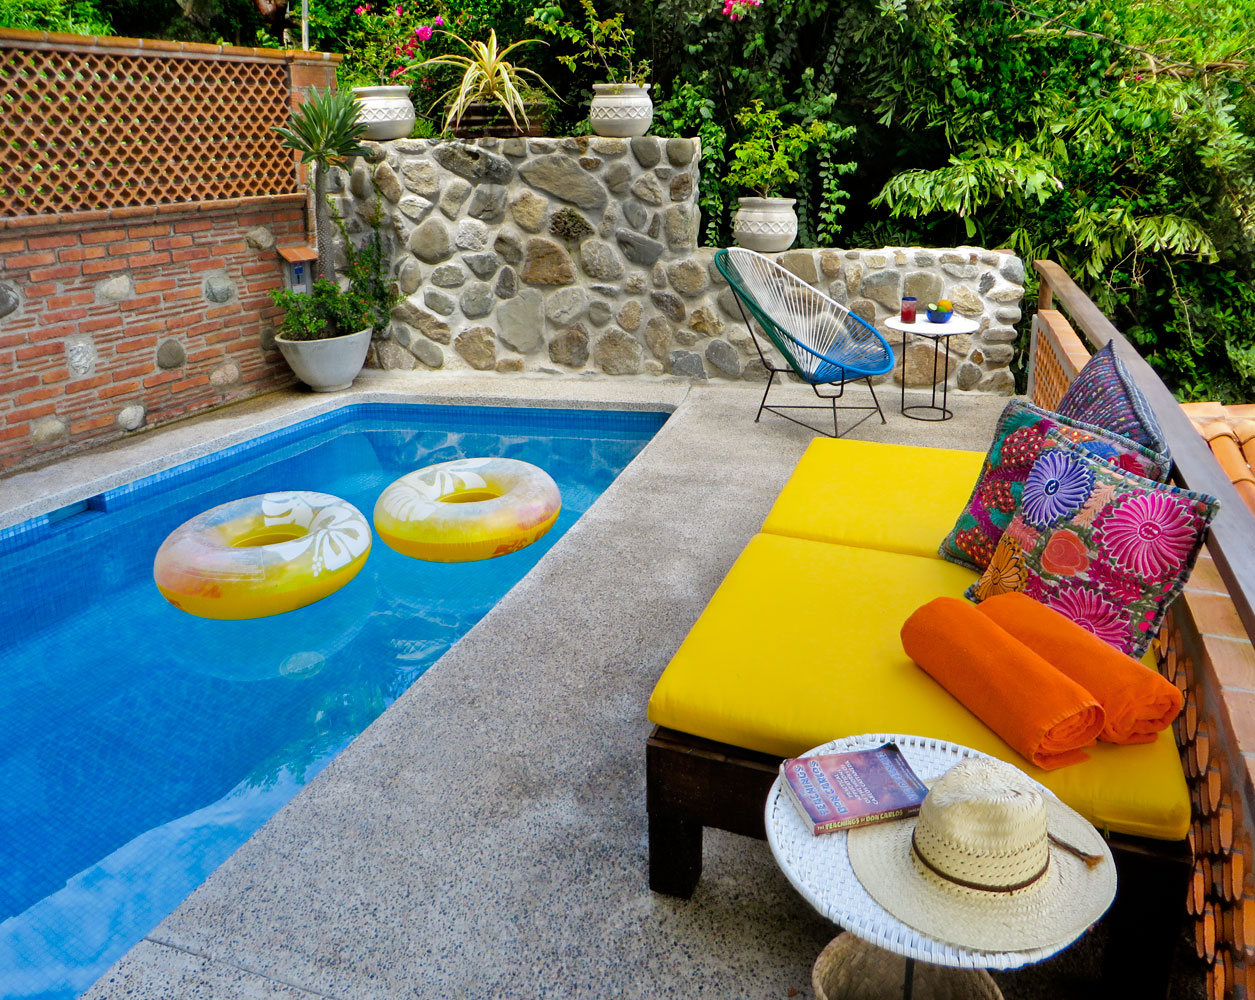 028-pool-deck-and-lounge-area.jpg